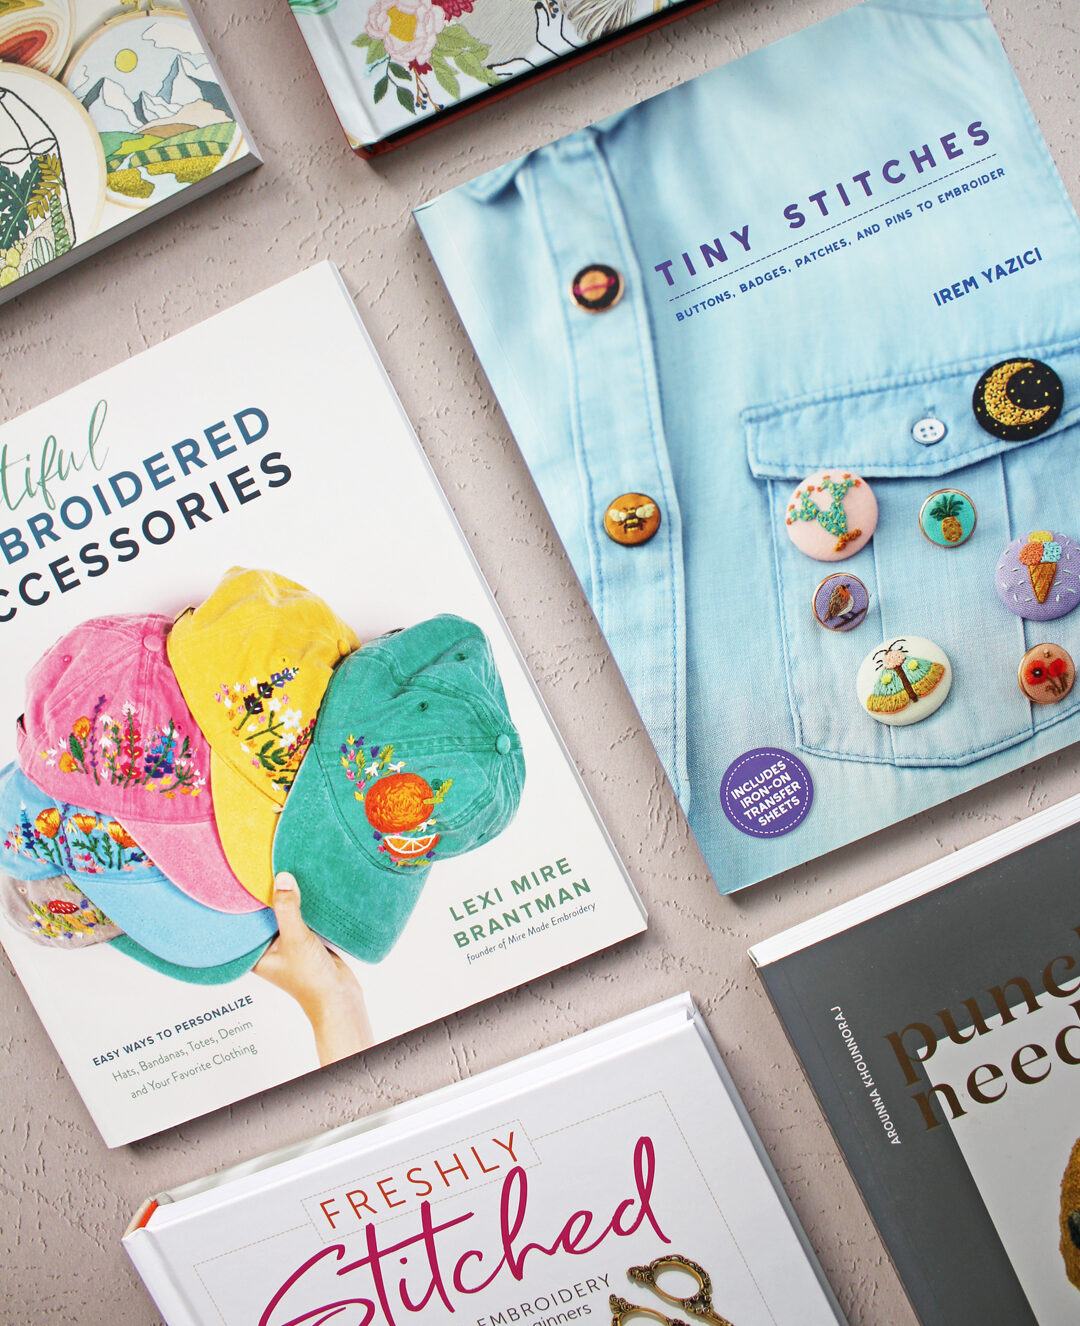 7 Embroidery Books That Offer Step-by-Step Instruction to Stitching Lovely Projects